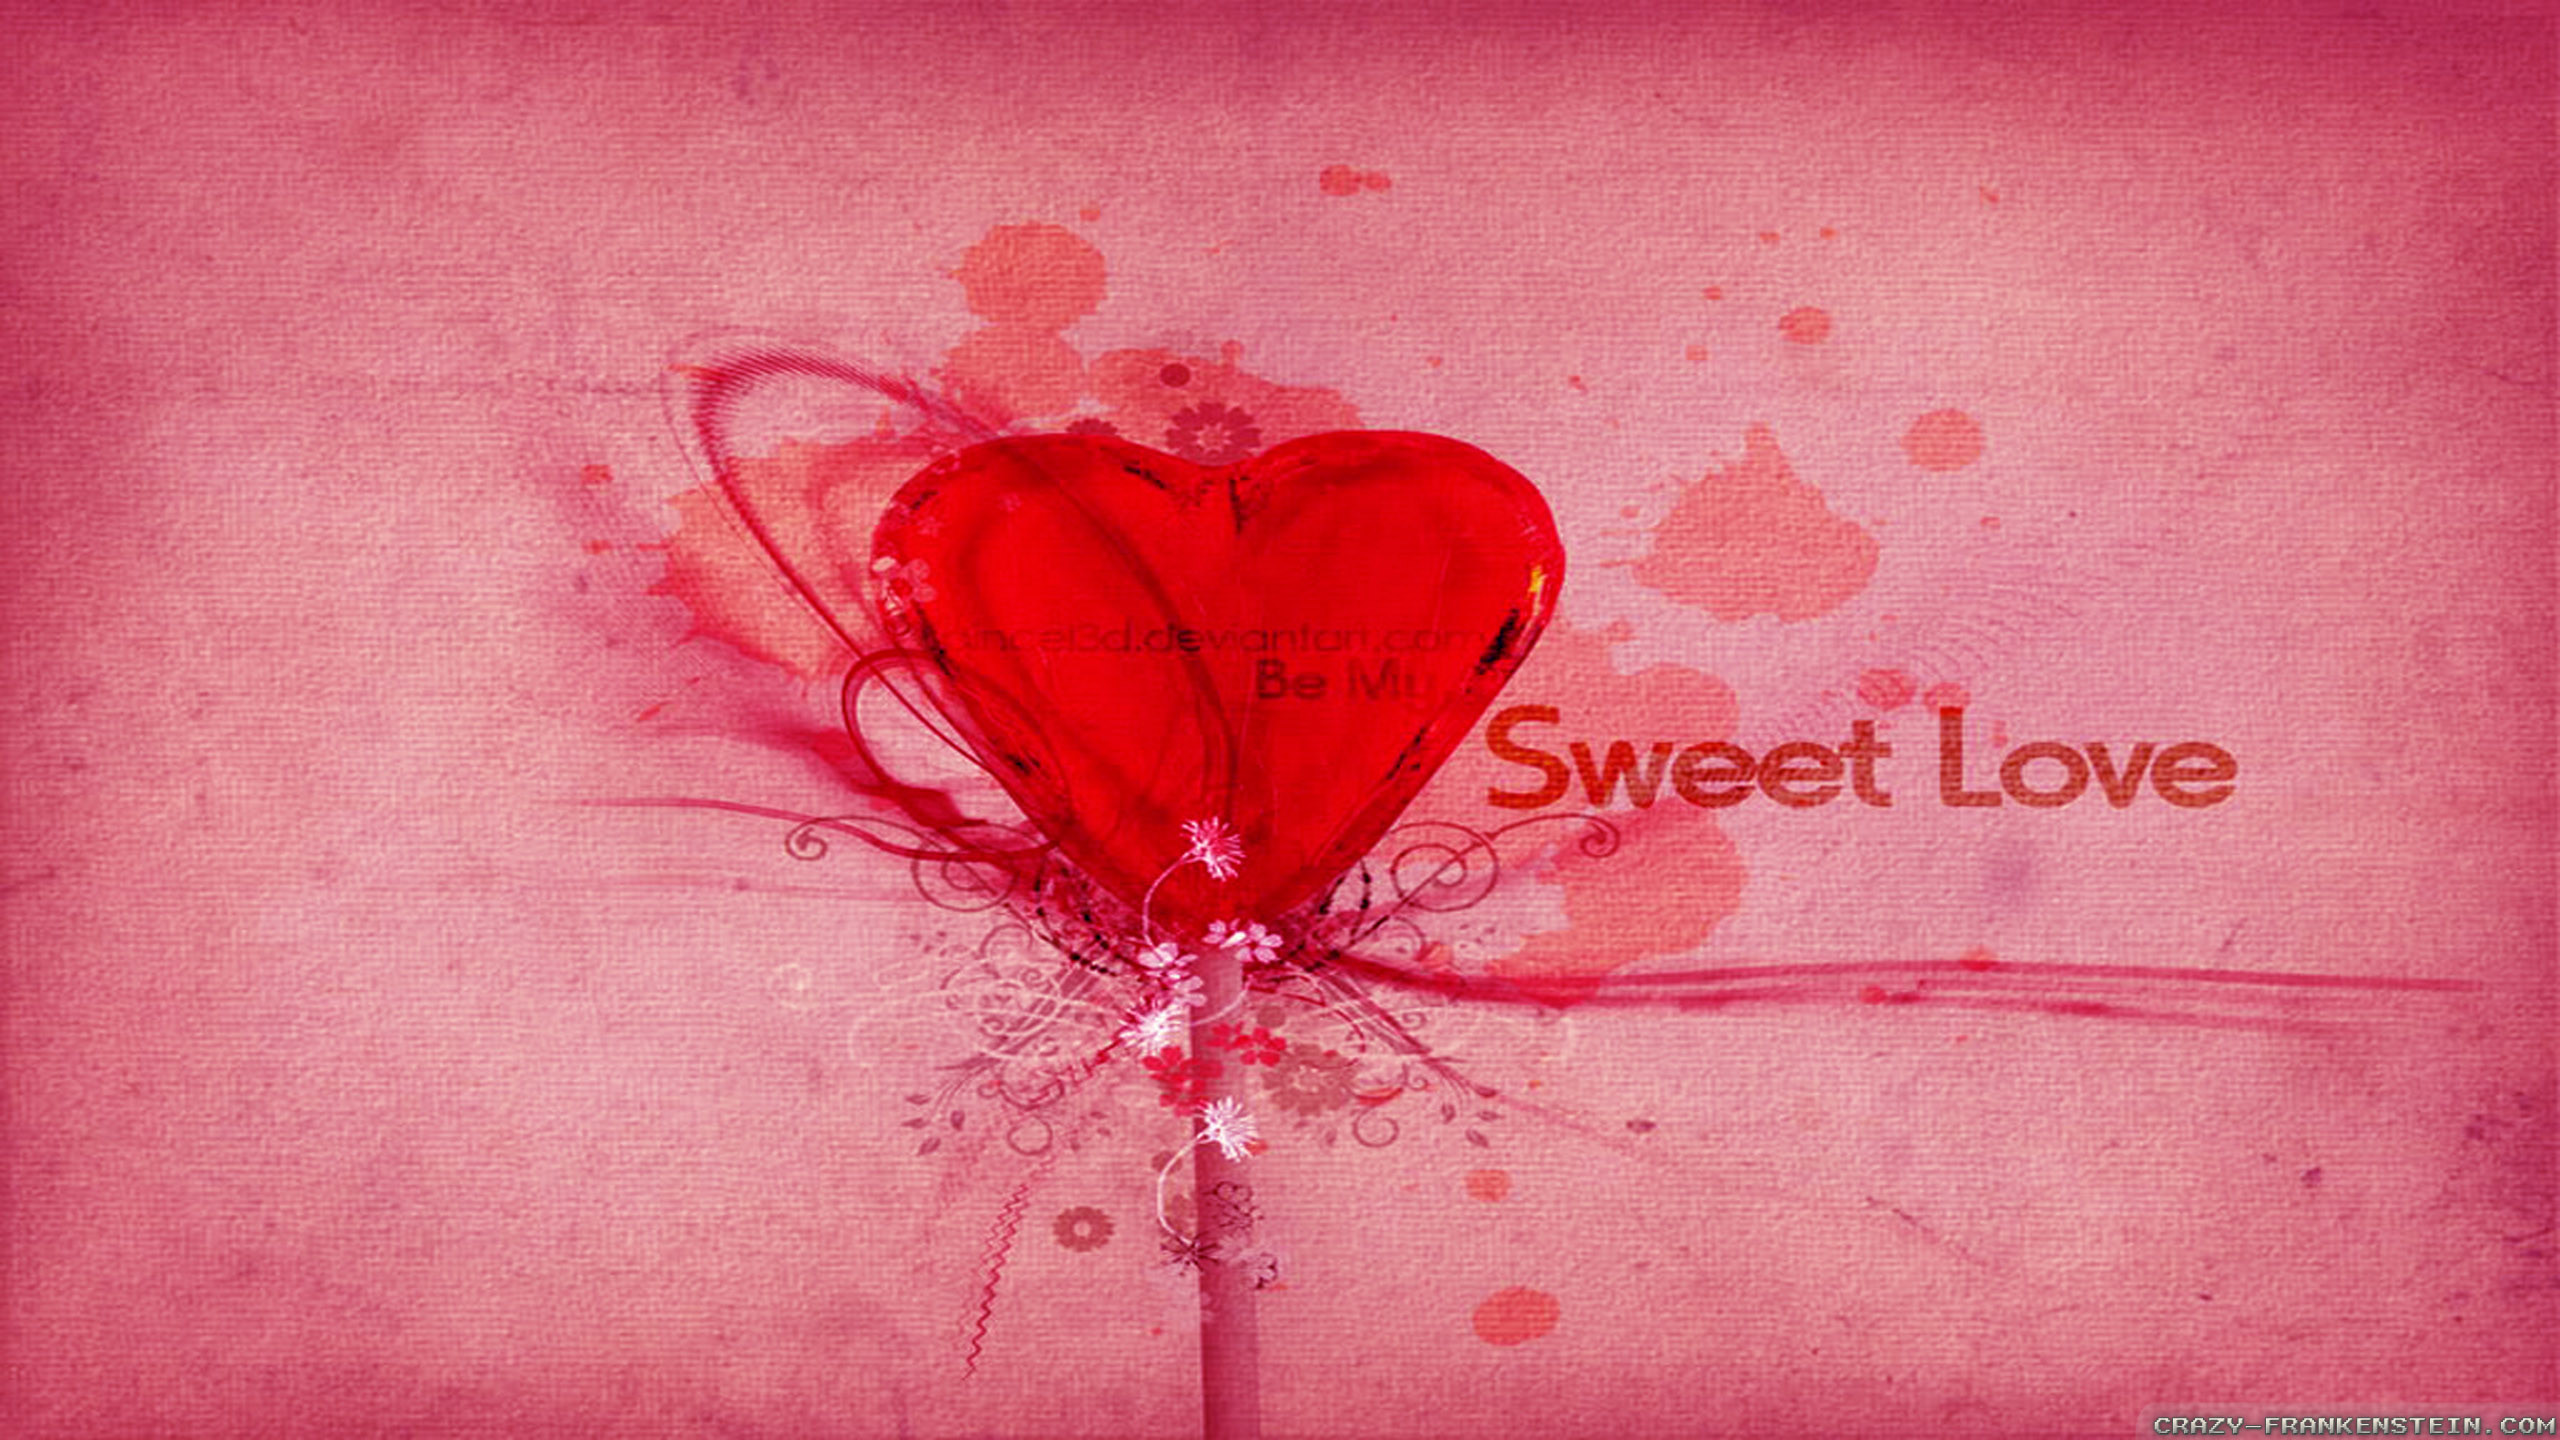 Sweet Love Wallpaper ①